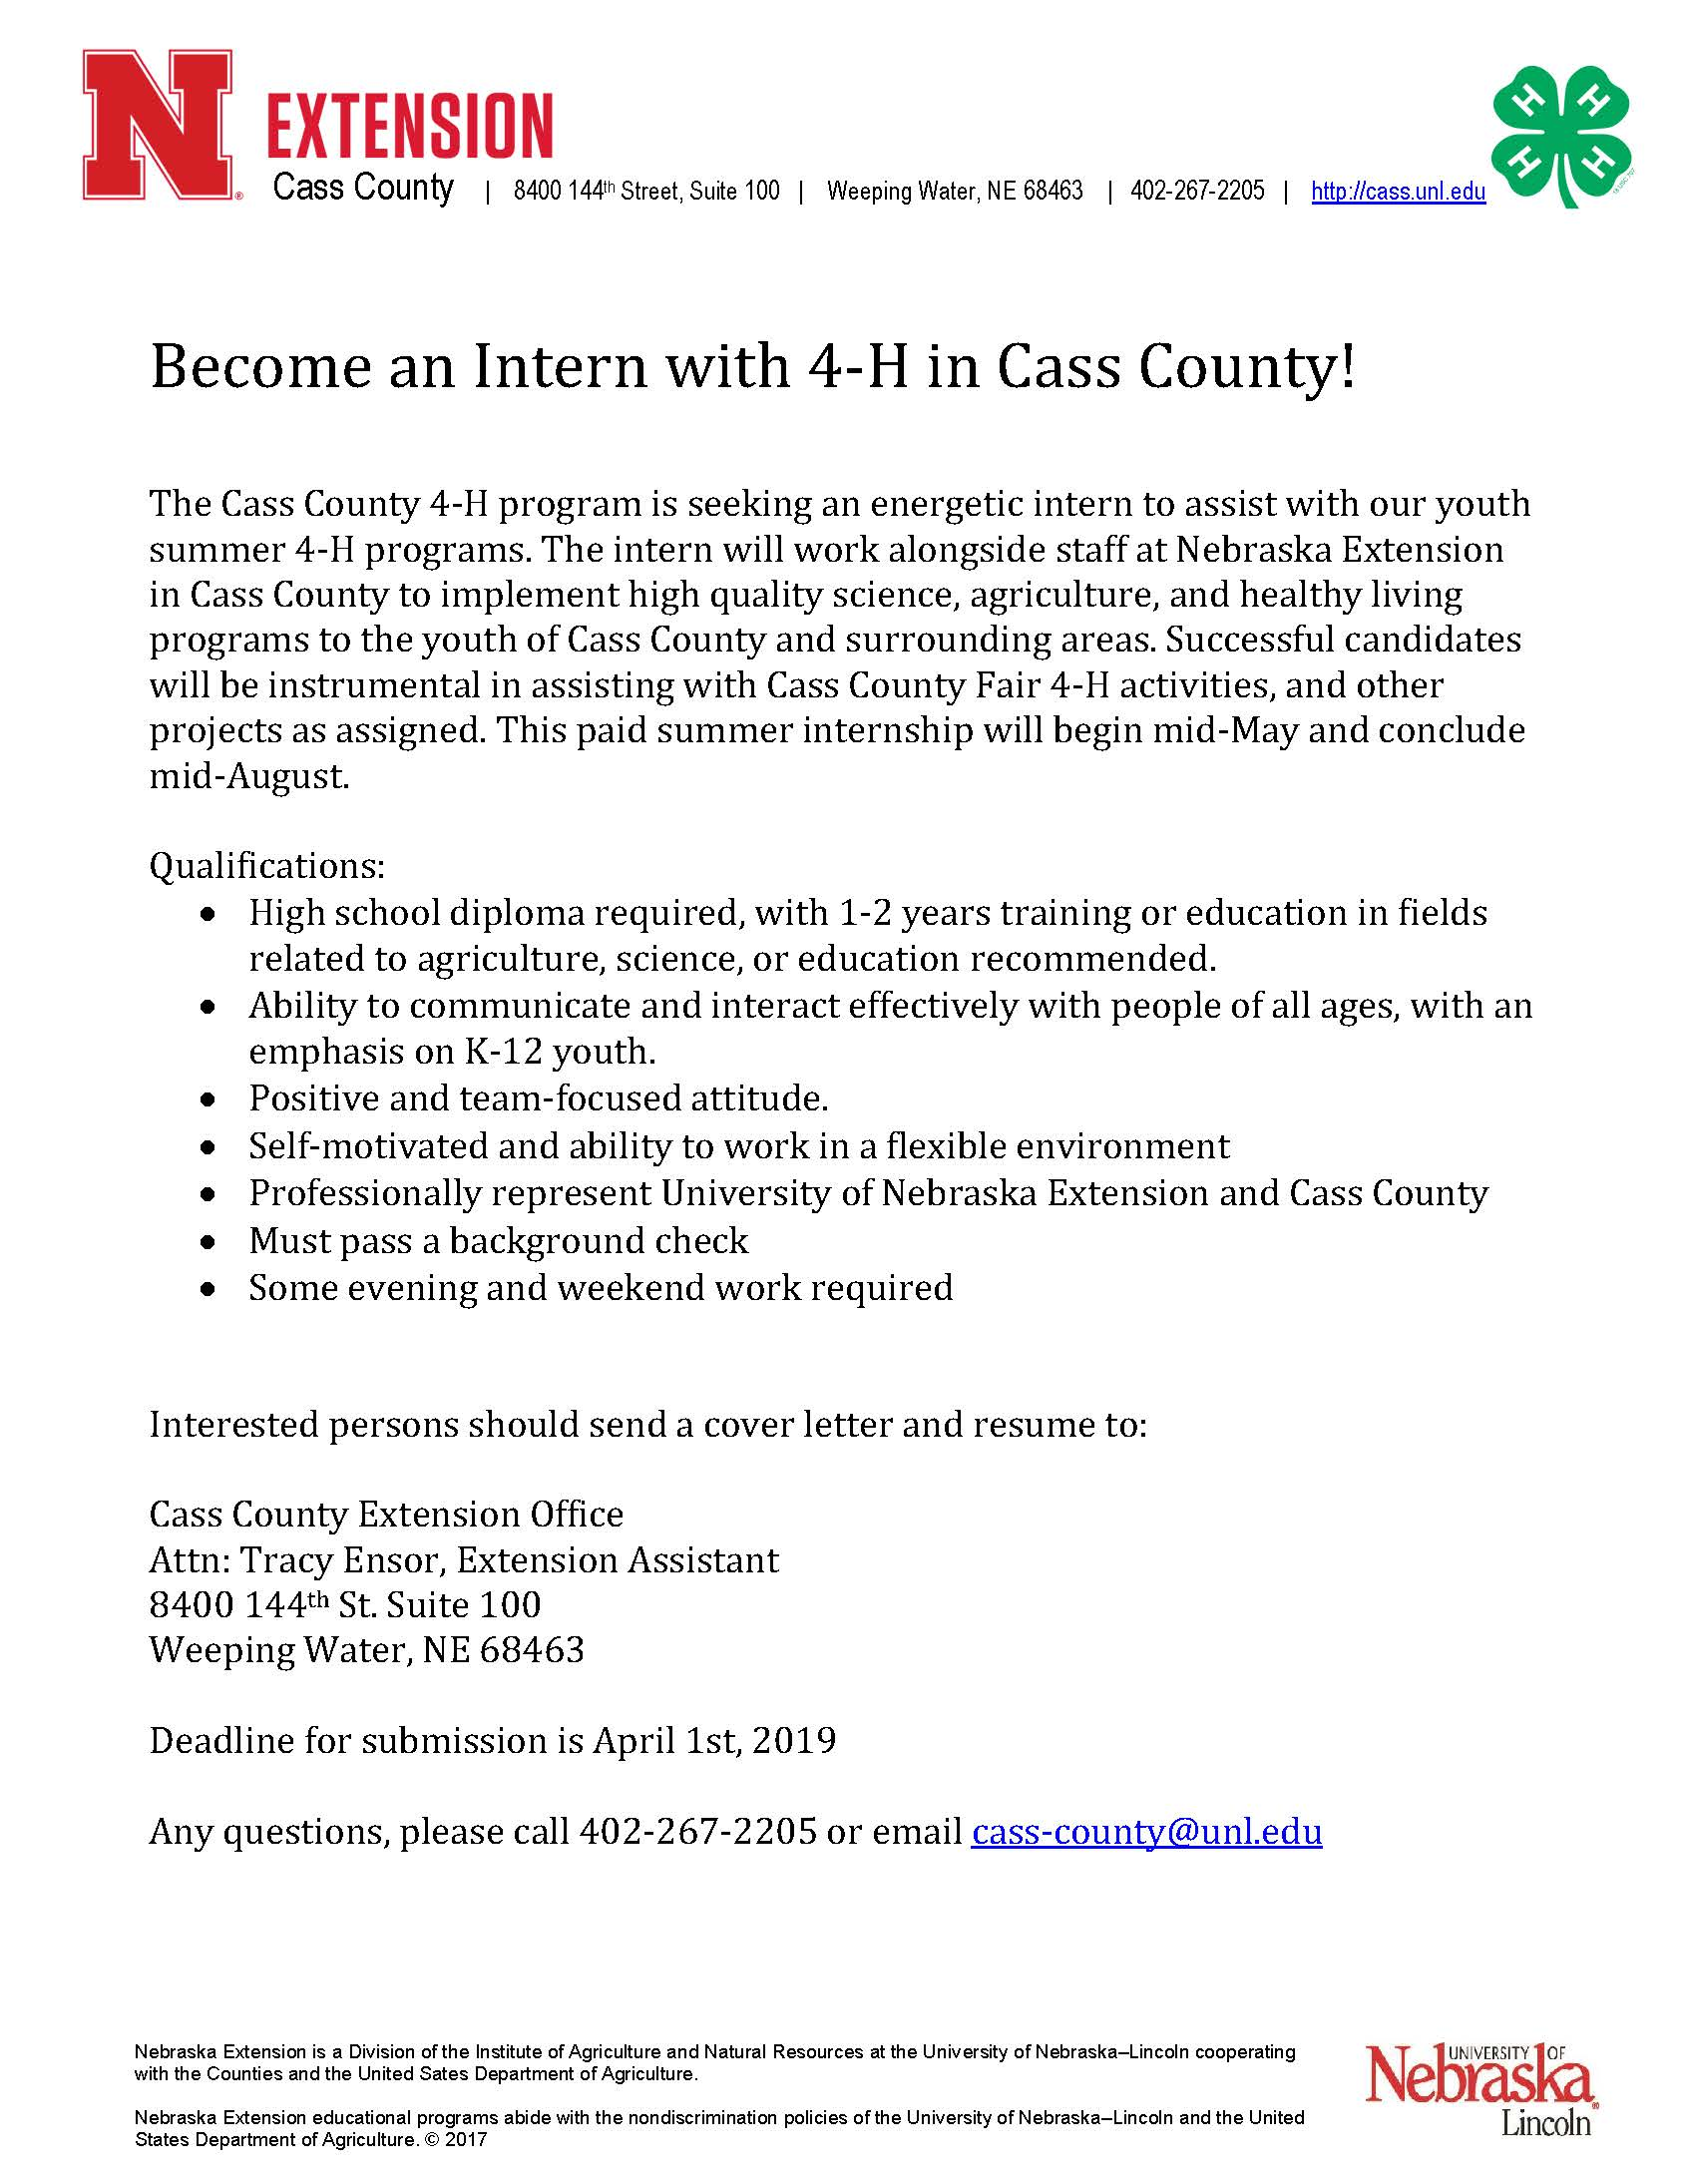 2019 Summer nn Intern call letter